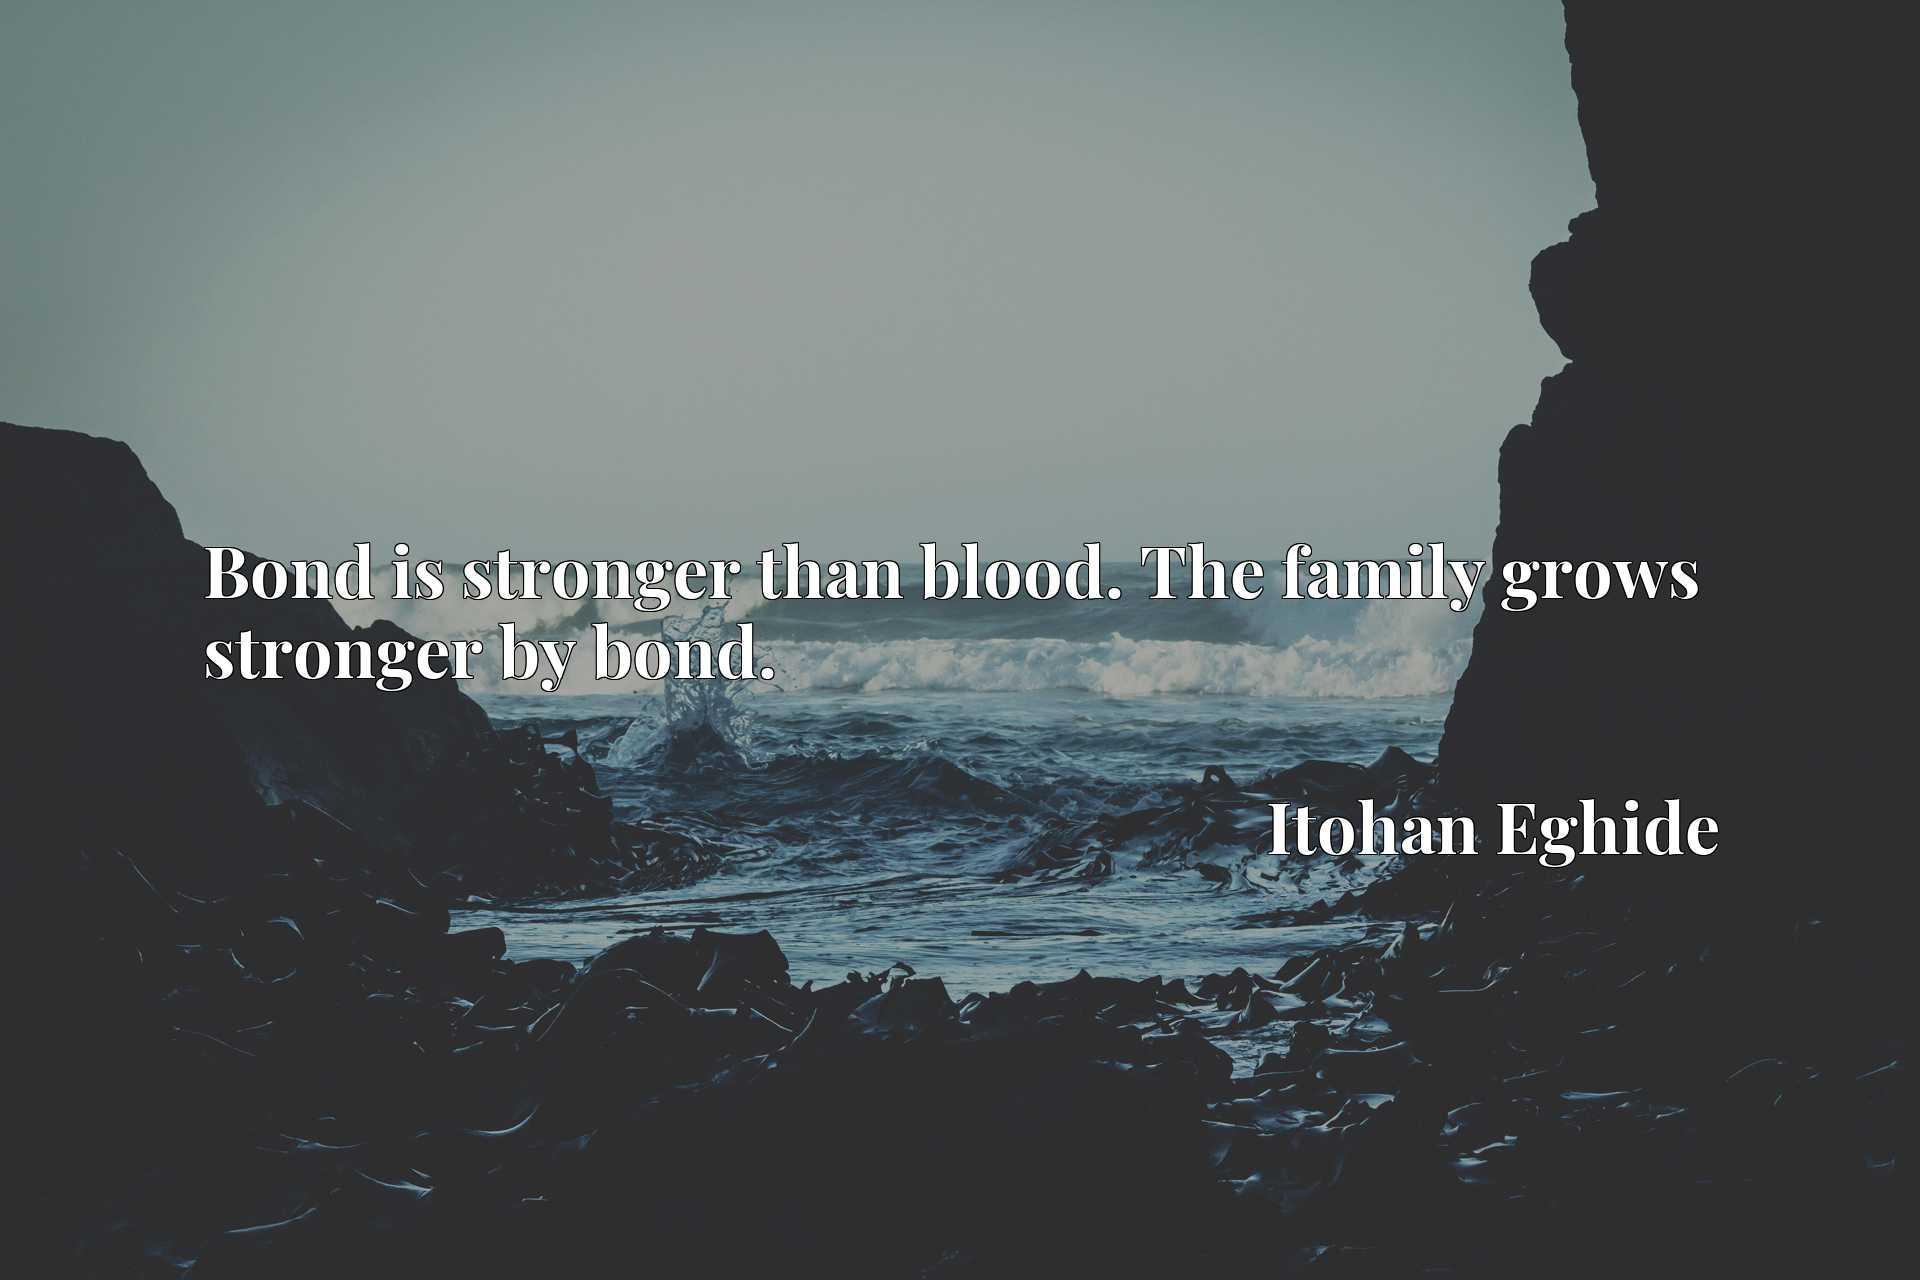 Bond is stronger than blood. The family grows stronger by bond.